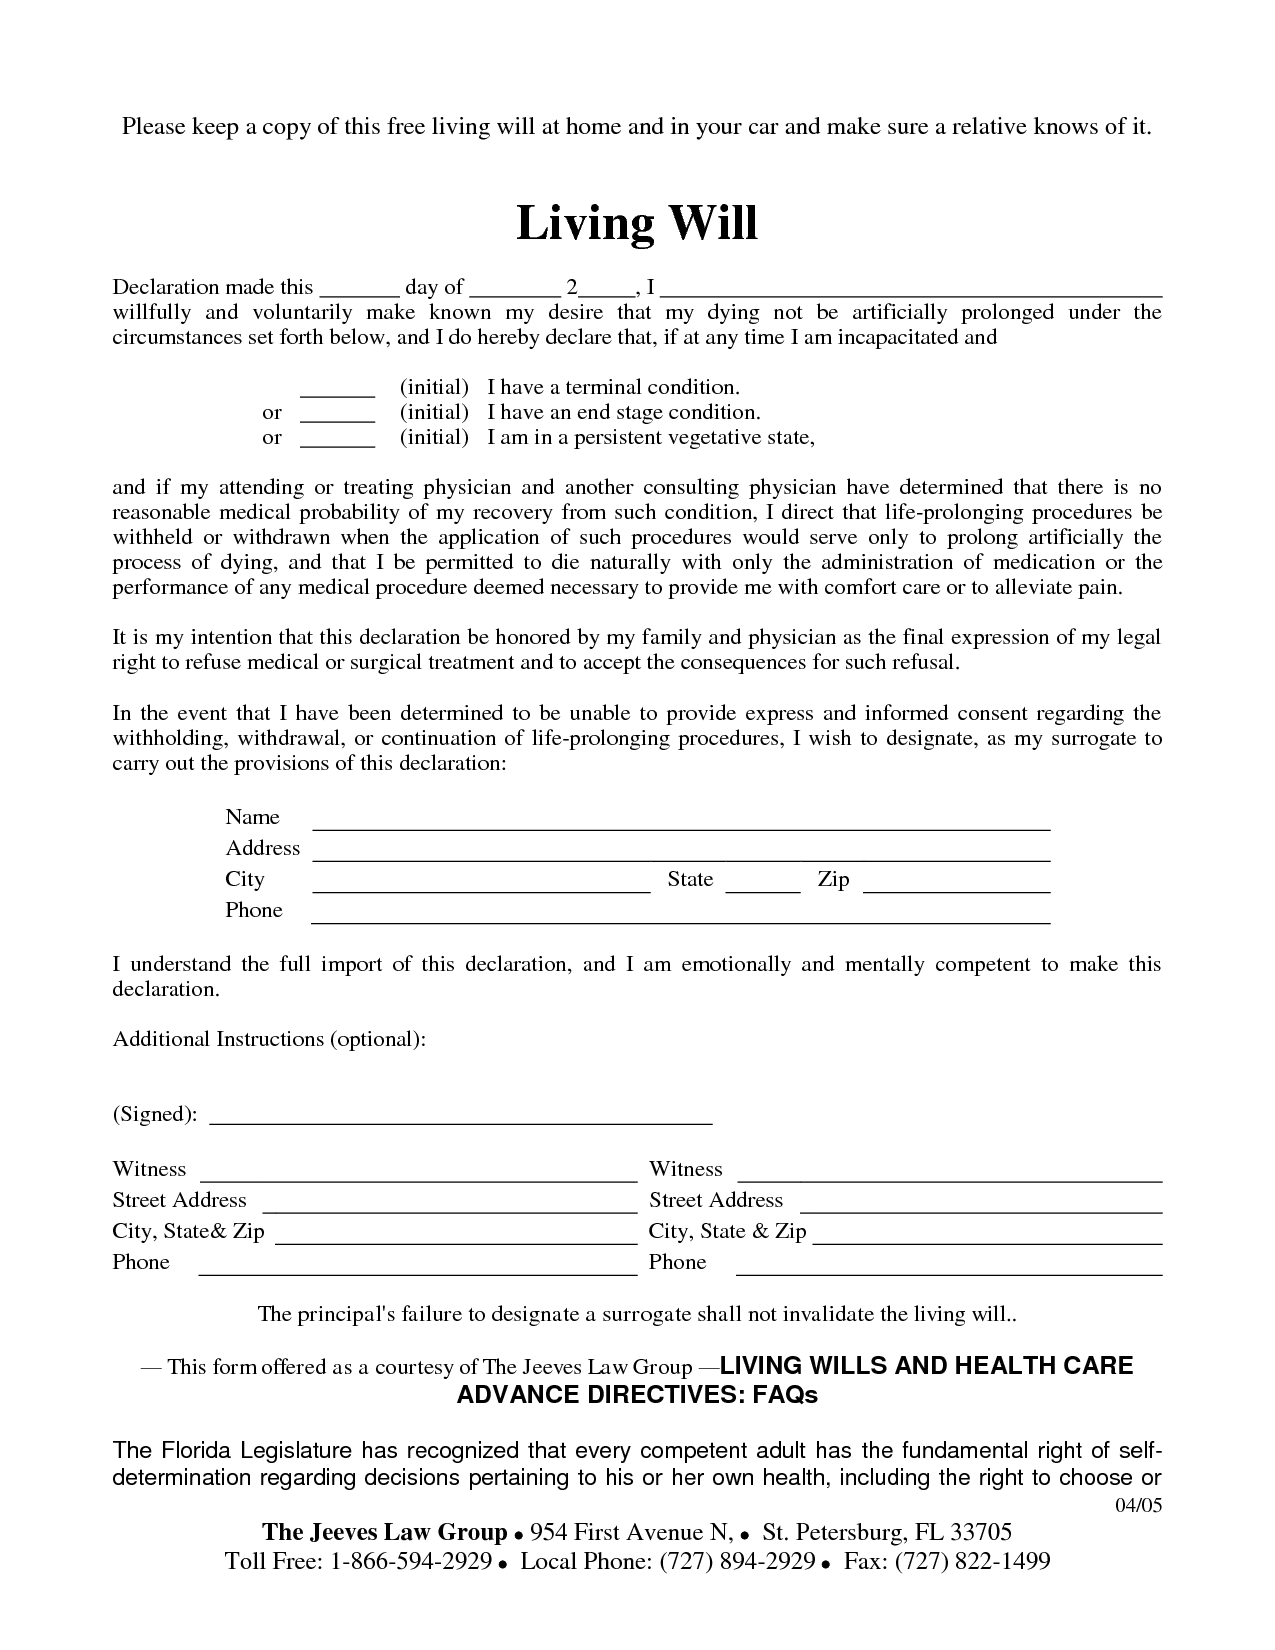 Living Will Sample Free Printable Documents